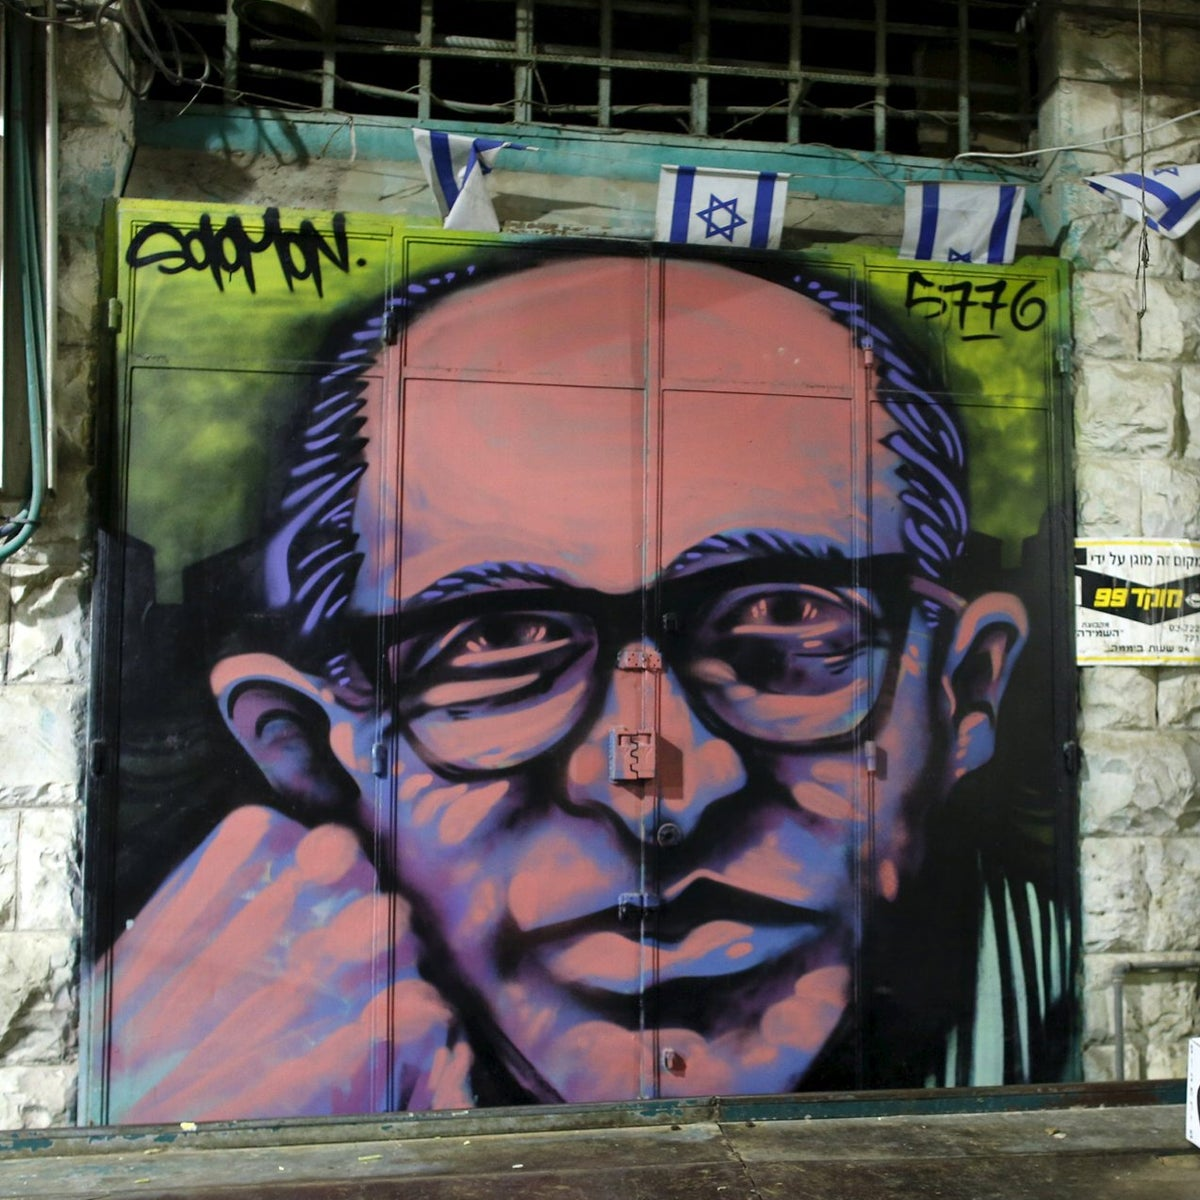 A spray-painted portrait is seen on the metal shutter of a closed storefront in Mahane Yehuda, one of Jerusalem's most popular outdoor markets February 24, 2016. Picture taken February 24, 2016.